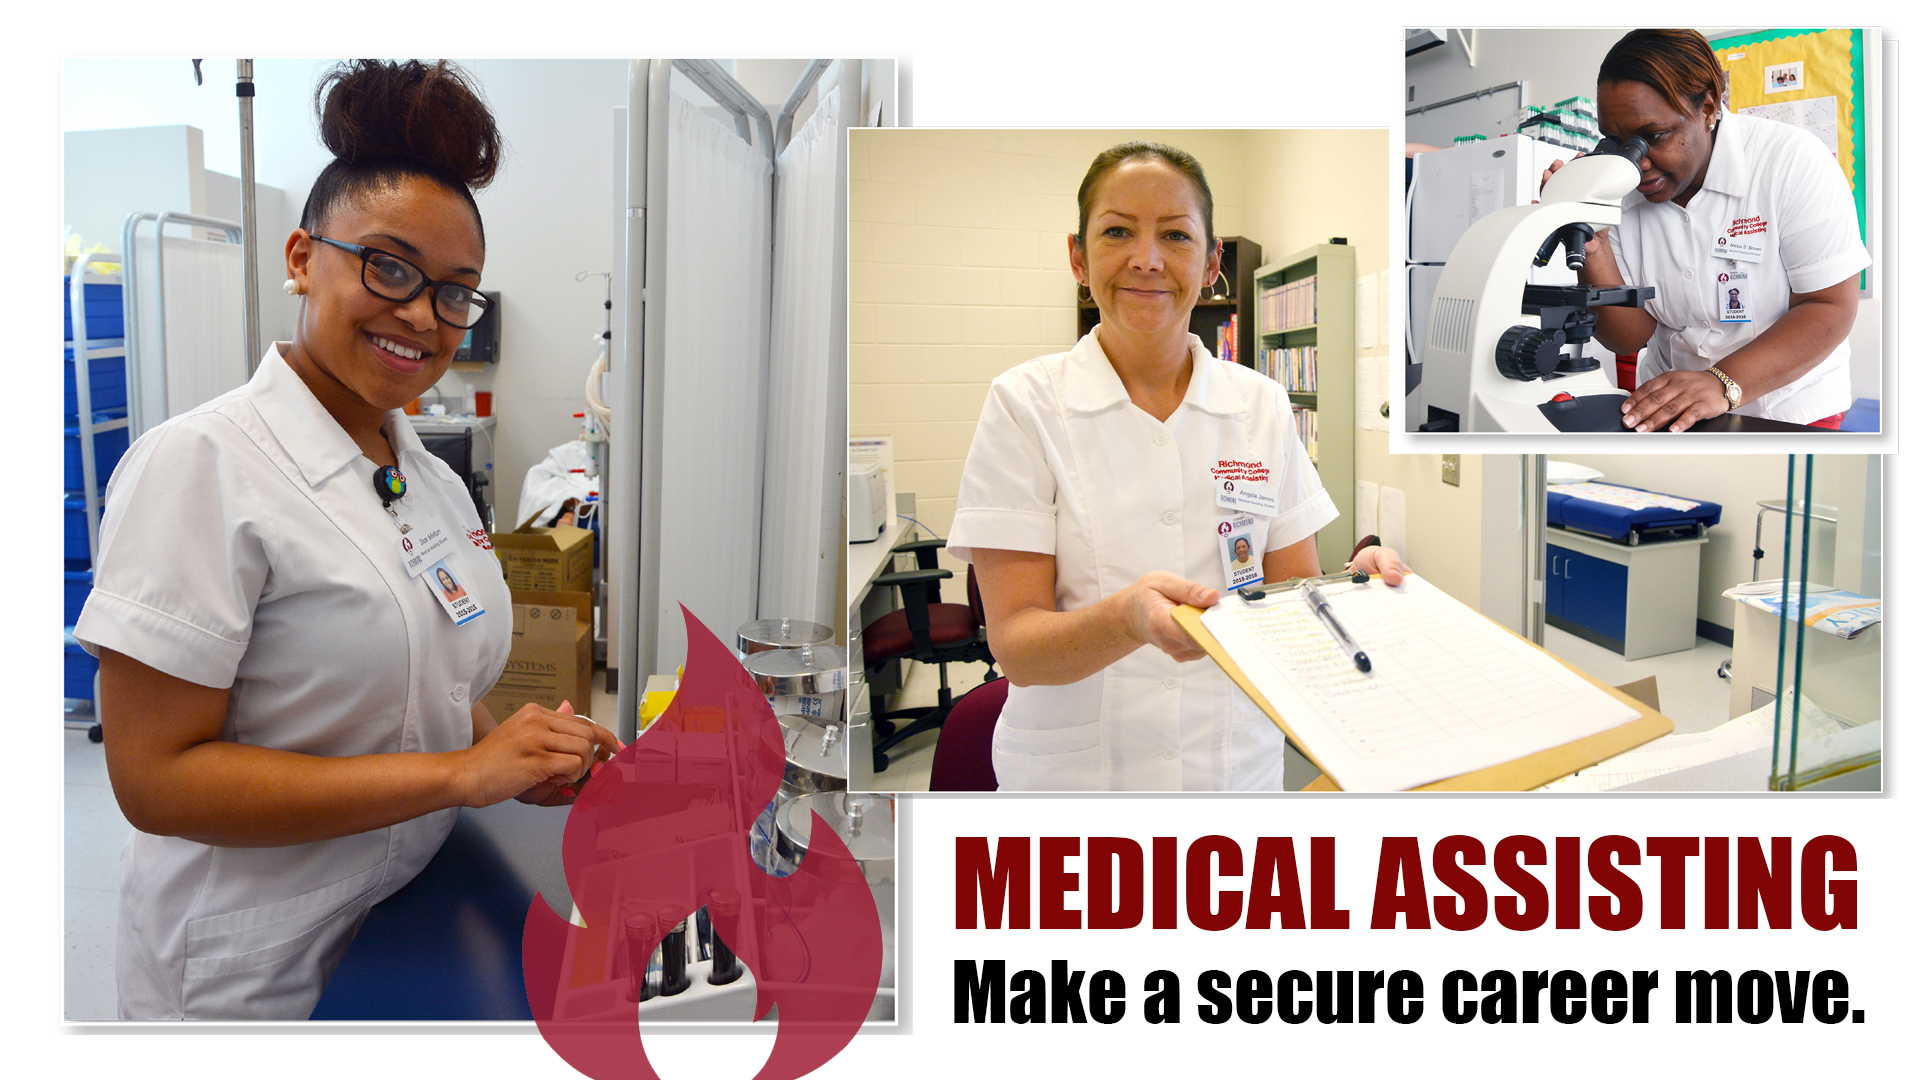 Medical Assisting Make a secure career move